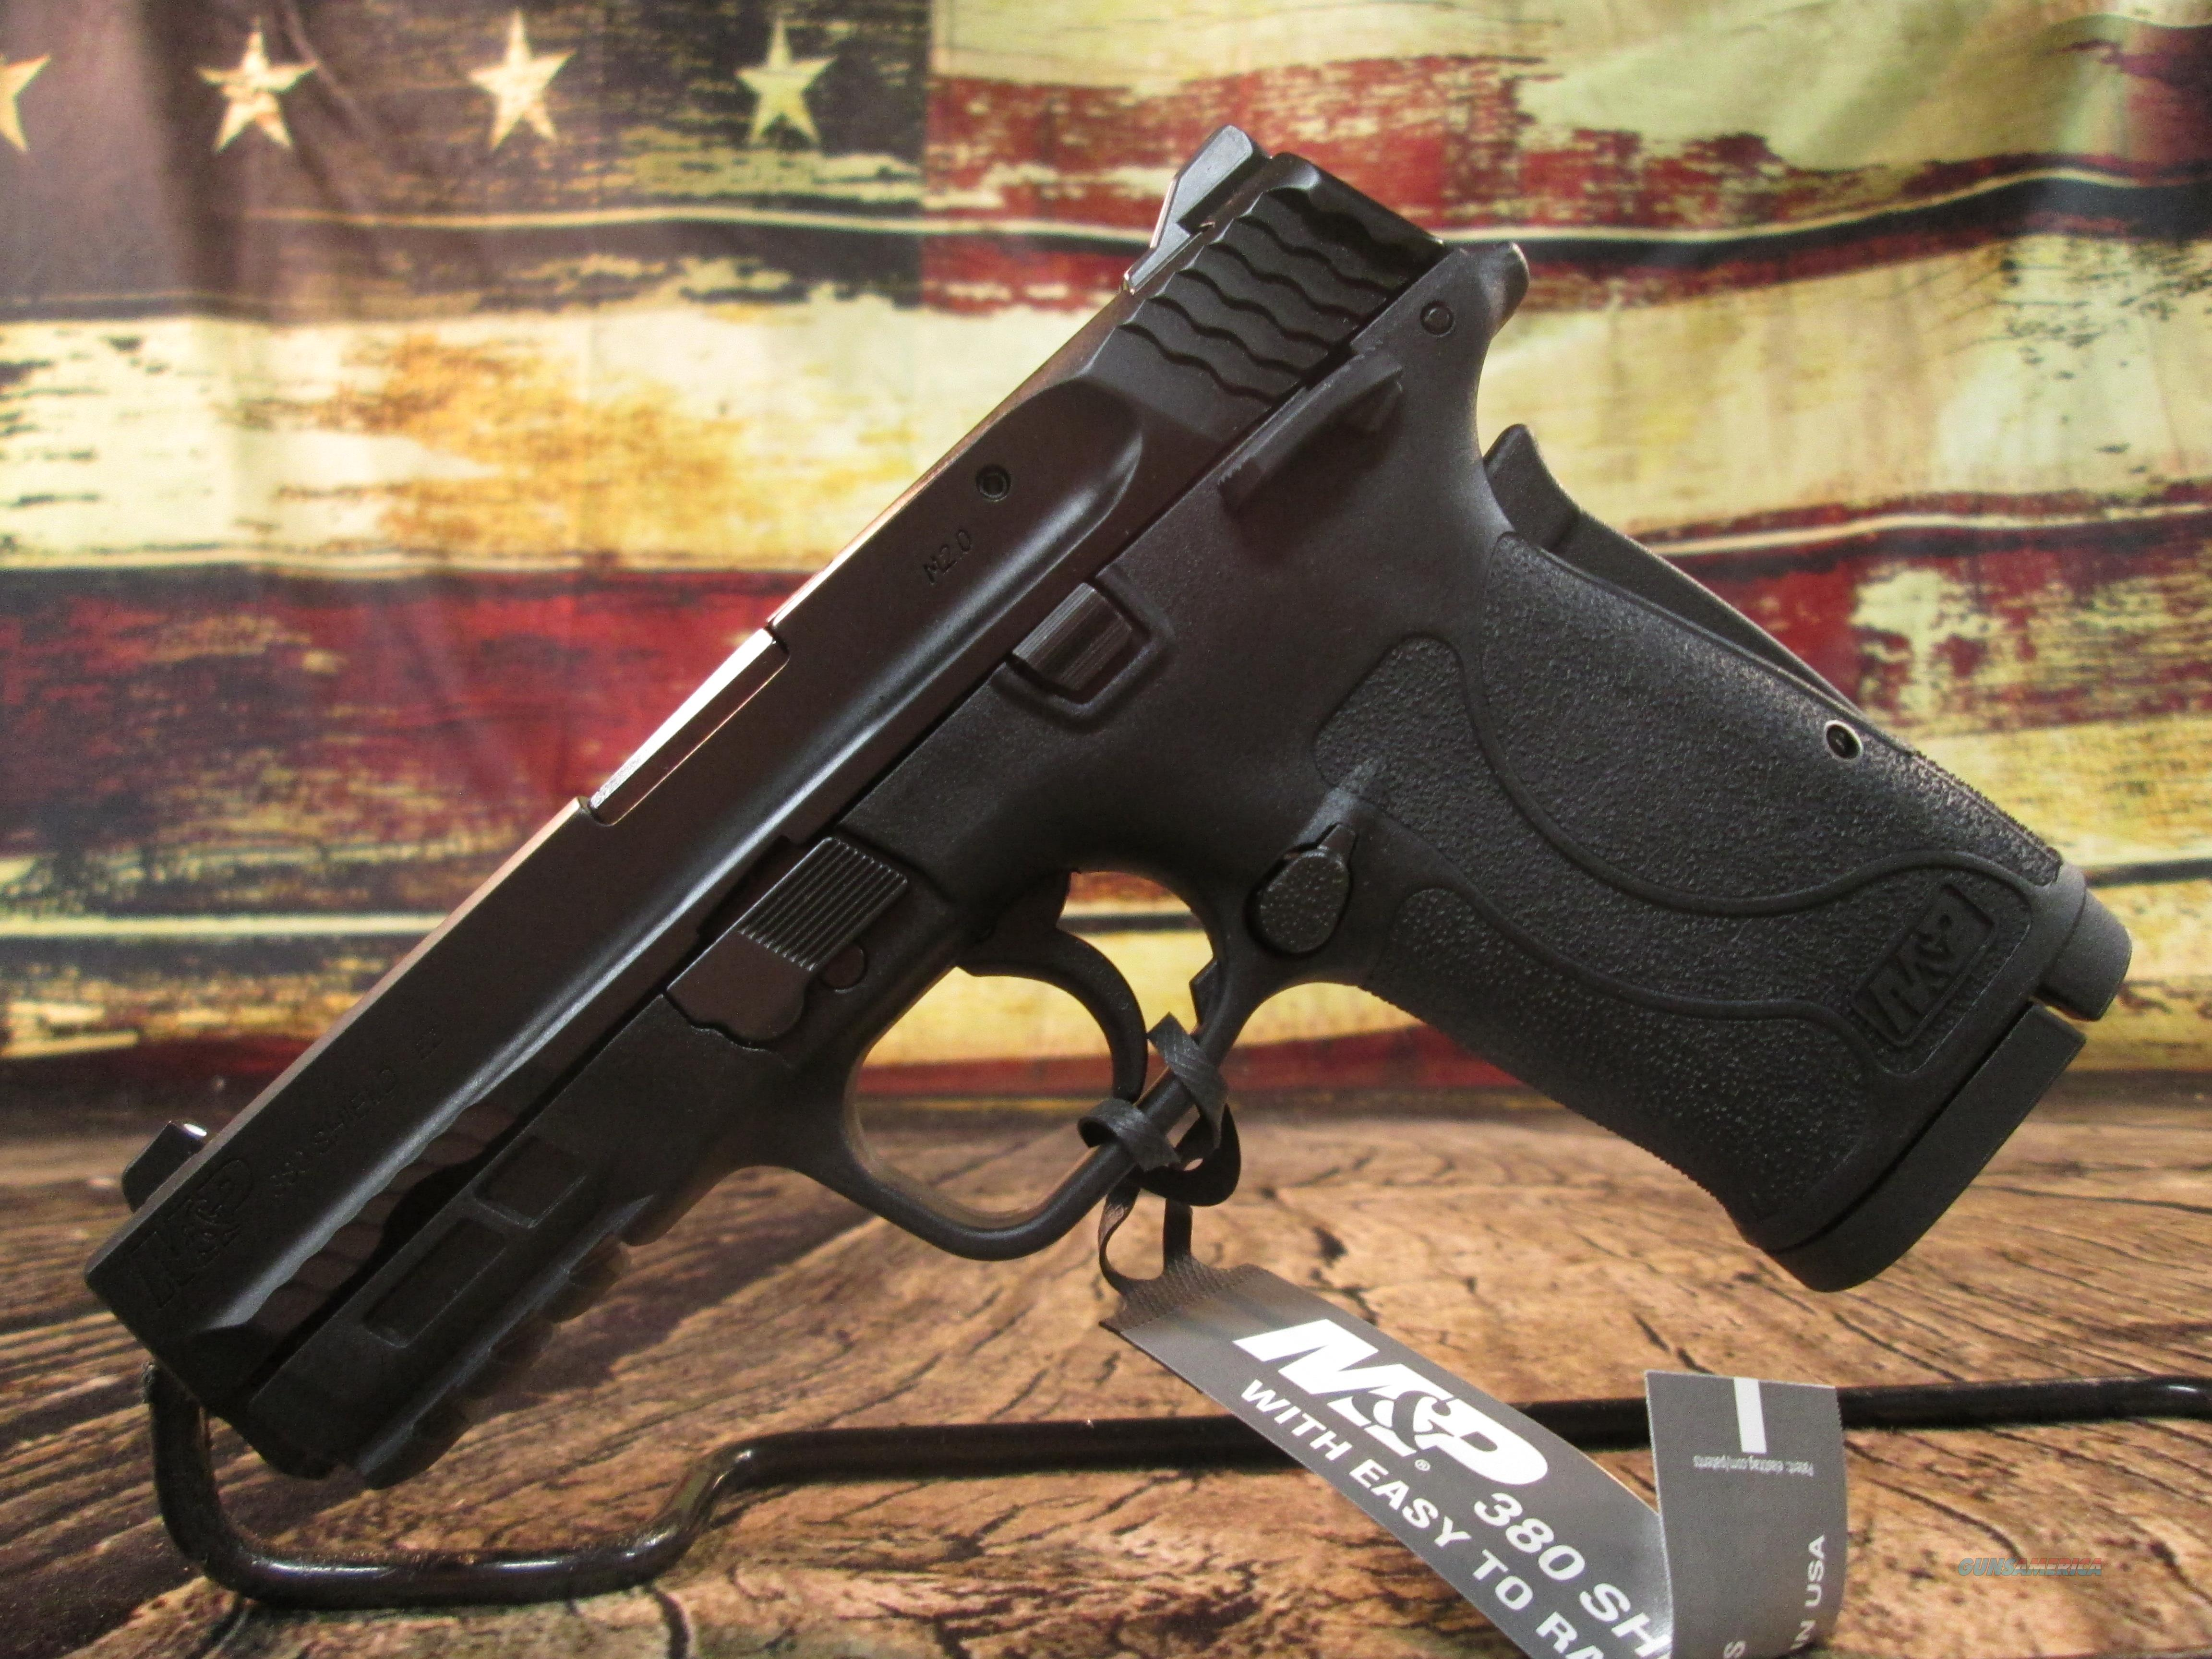 S&W M&P 380 SHIELD NEW WITH/MANUAL THUMB SAFETY (11663)   Guns > Pistols > Smith & Wesson Pistols - Autos > Polymer Frame